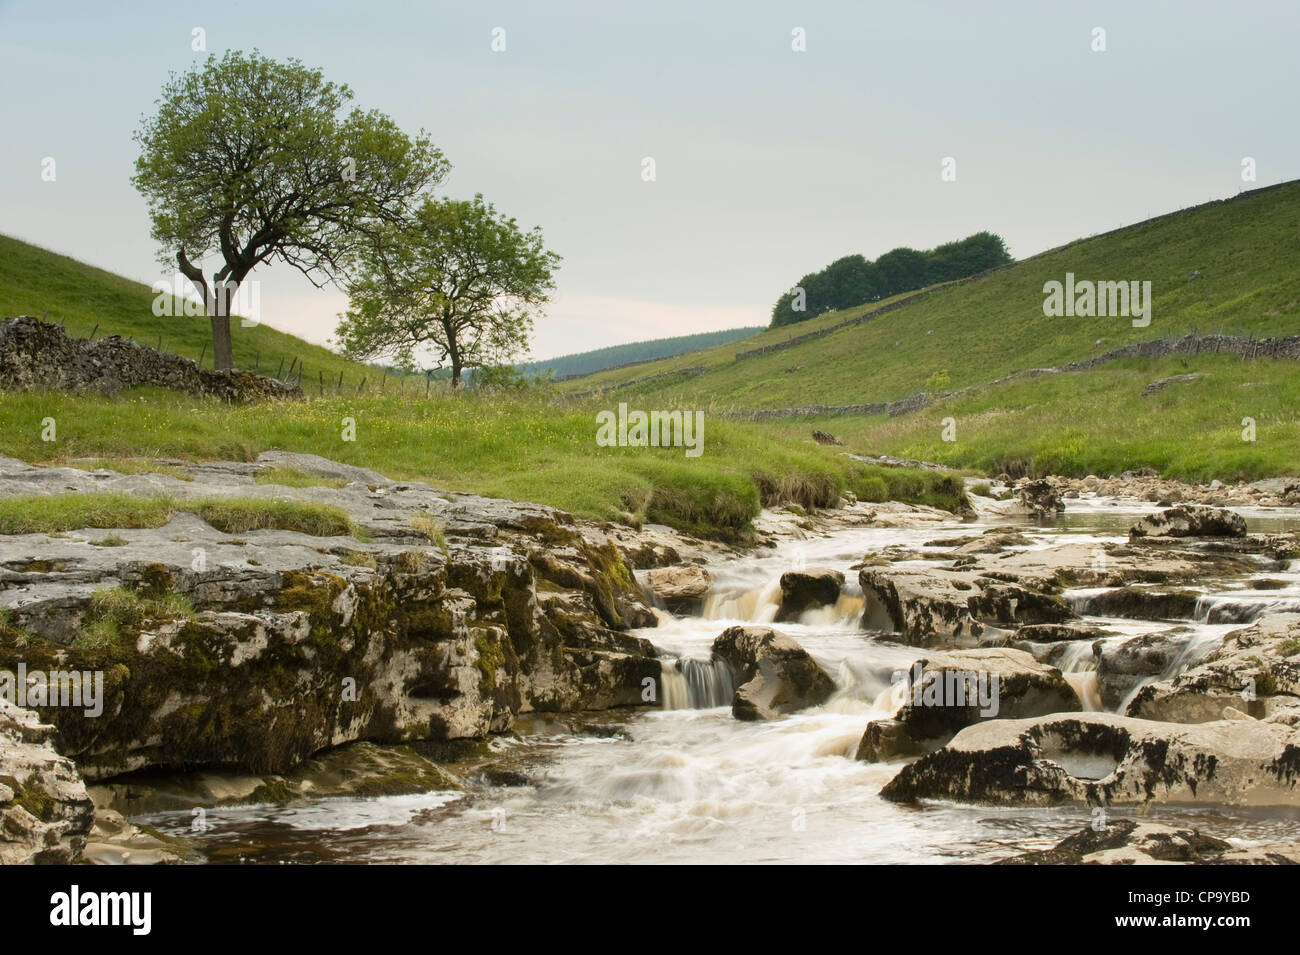 River Wharfe, flowing through quiet scenic narrow v-shaped valley, cascading over limestone rocks - Langstrothdale, Yorkshire Dales, England, UK. Stock Photo